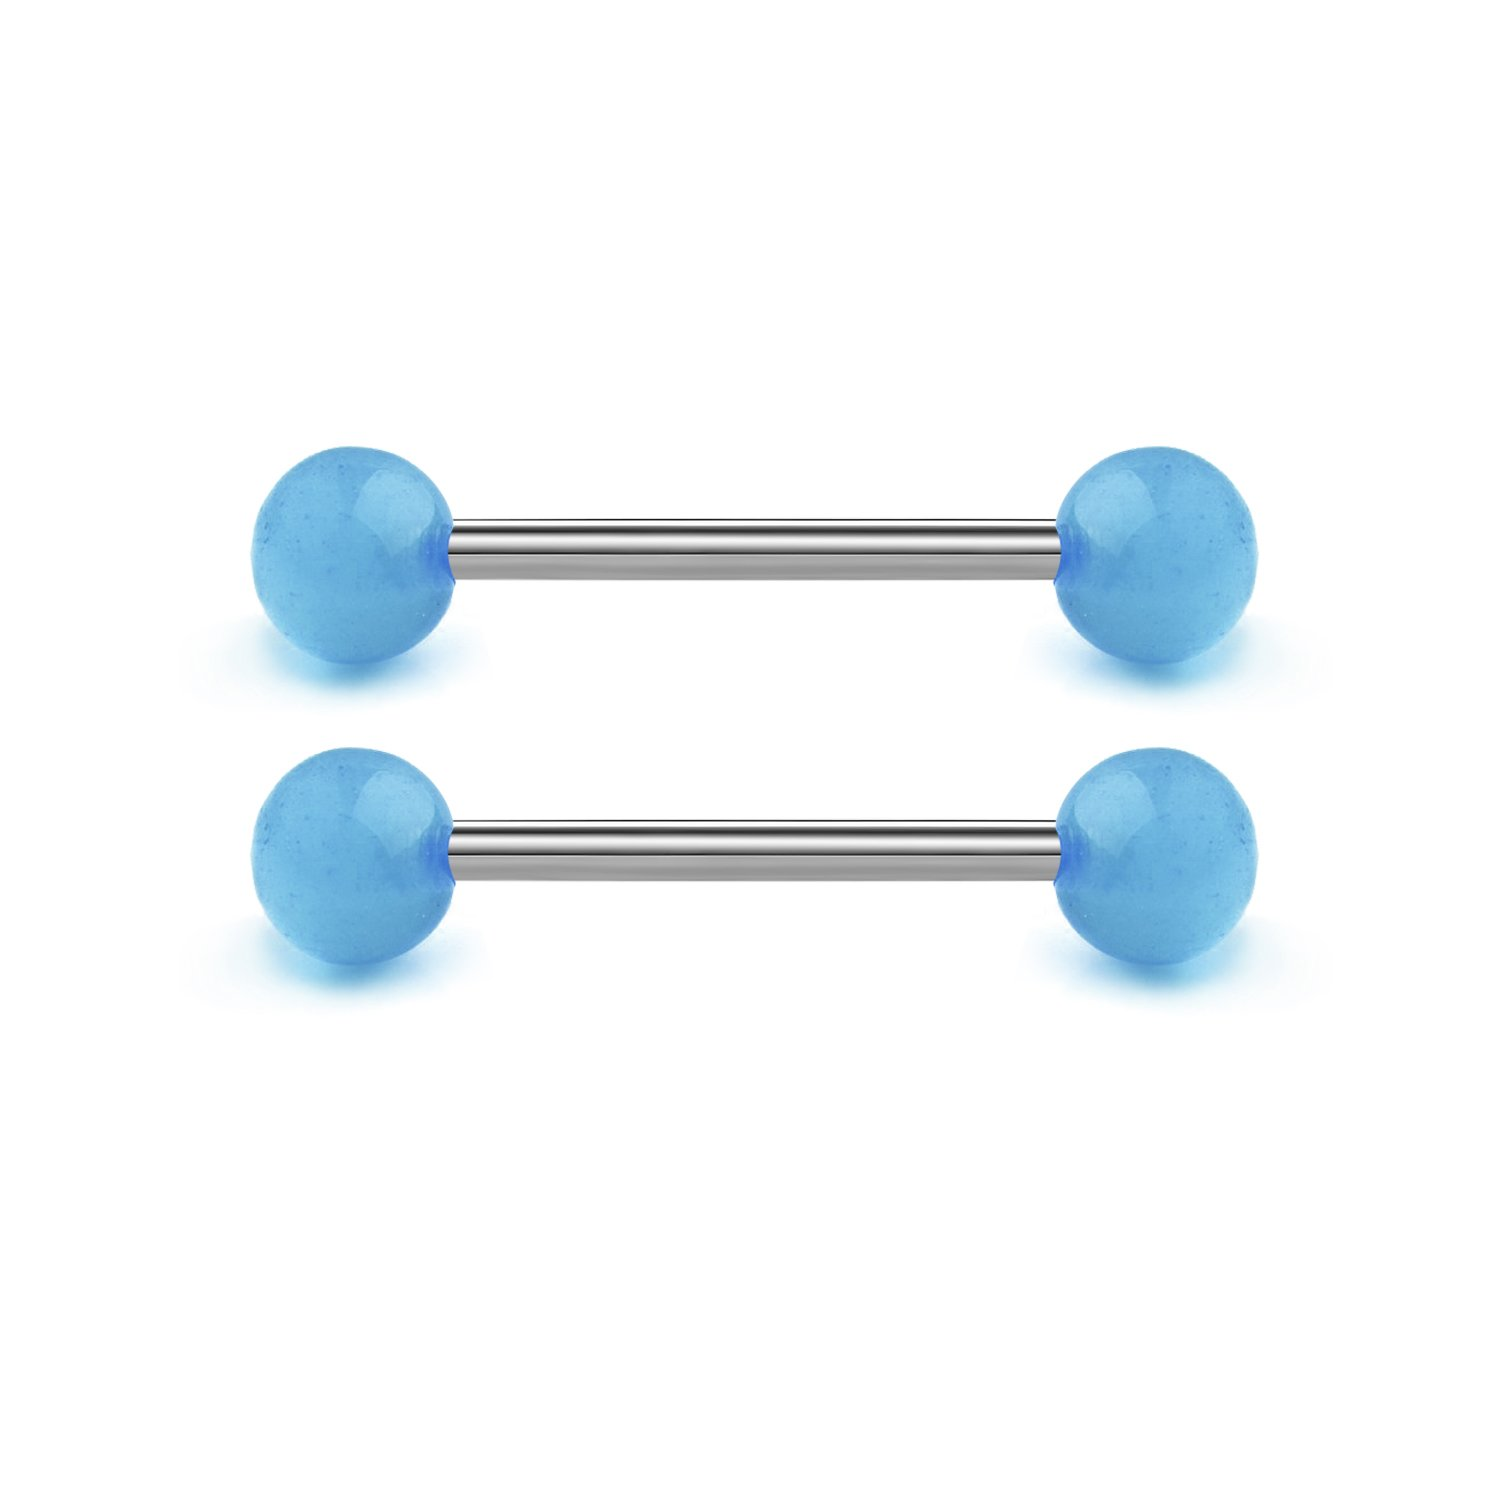 JFORYOU 14G Tongue Rings Nipplerings Stainless Steel Barbell Bio-Flex Comfortable Barbell Ring Body Piercing Jewelry 14mm 16mm 18mm 3 Length Size can Choose